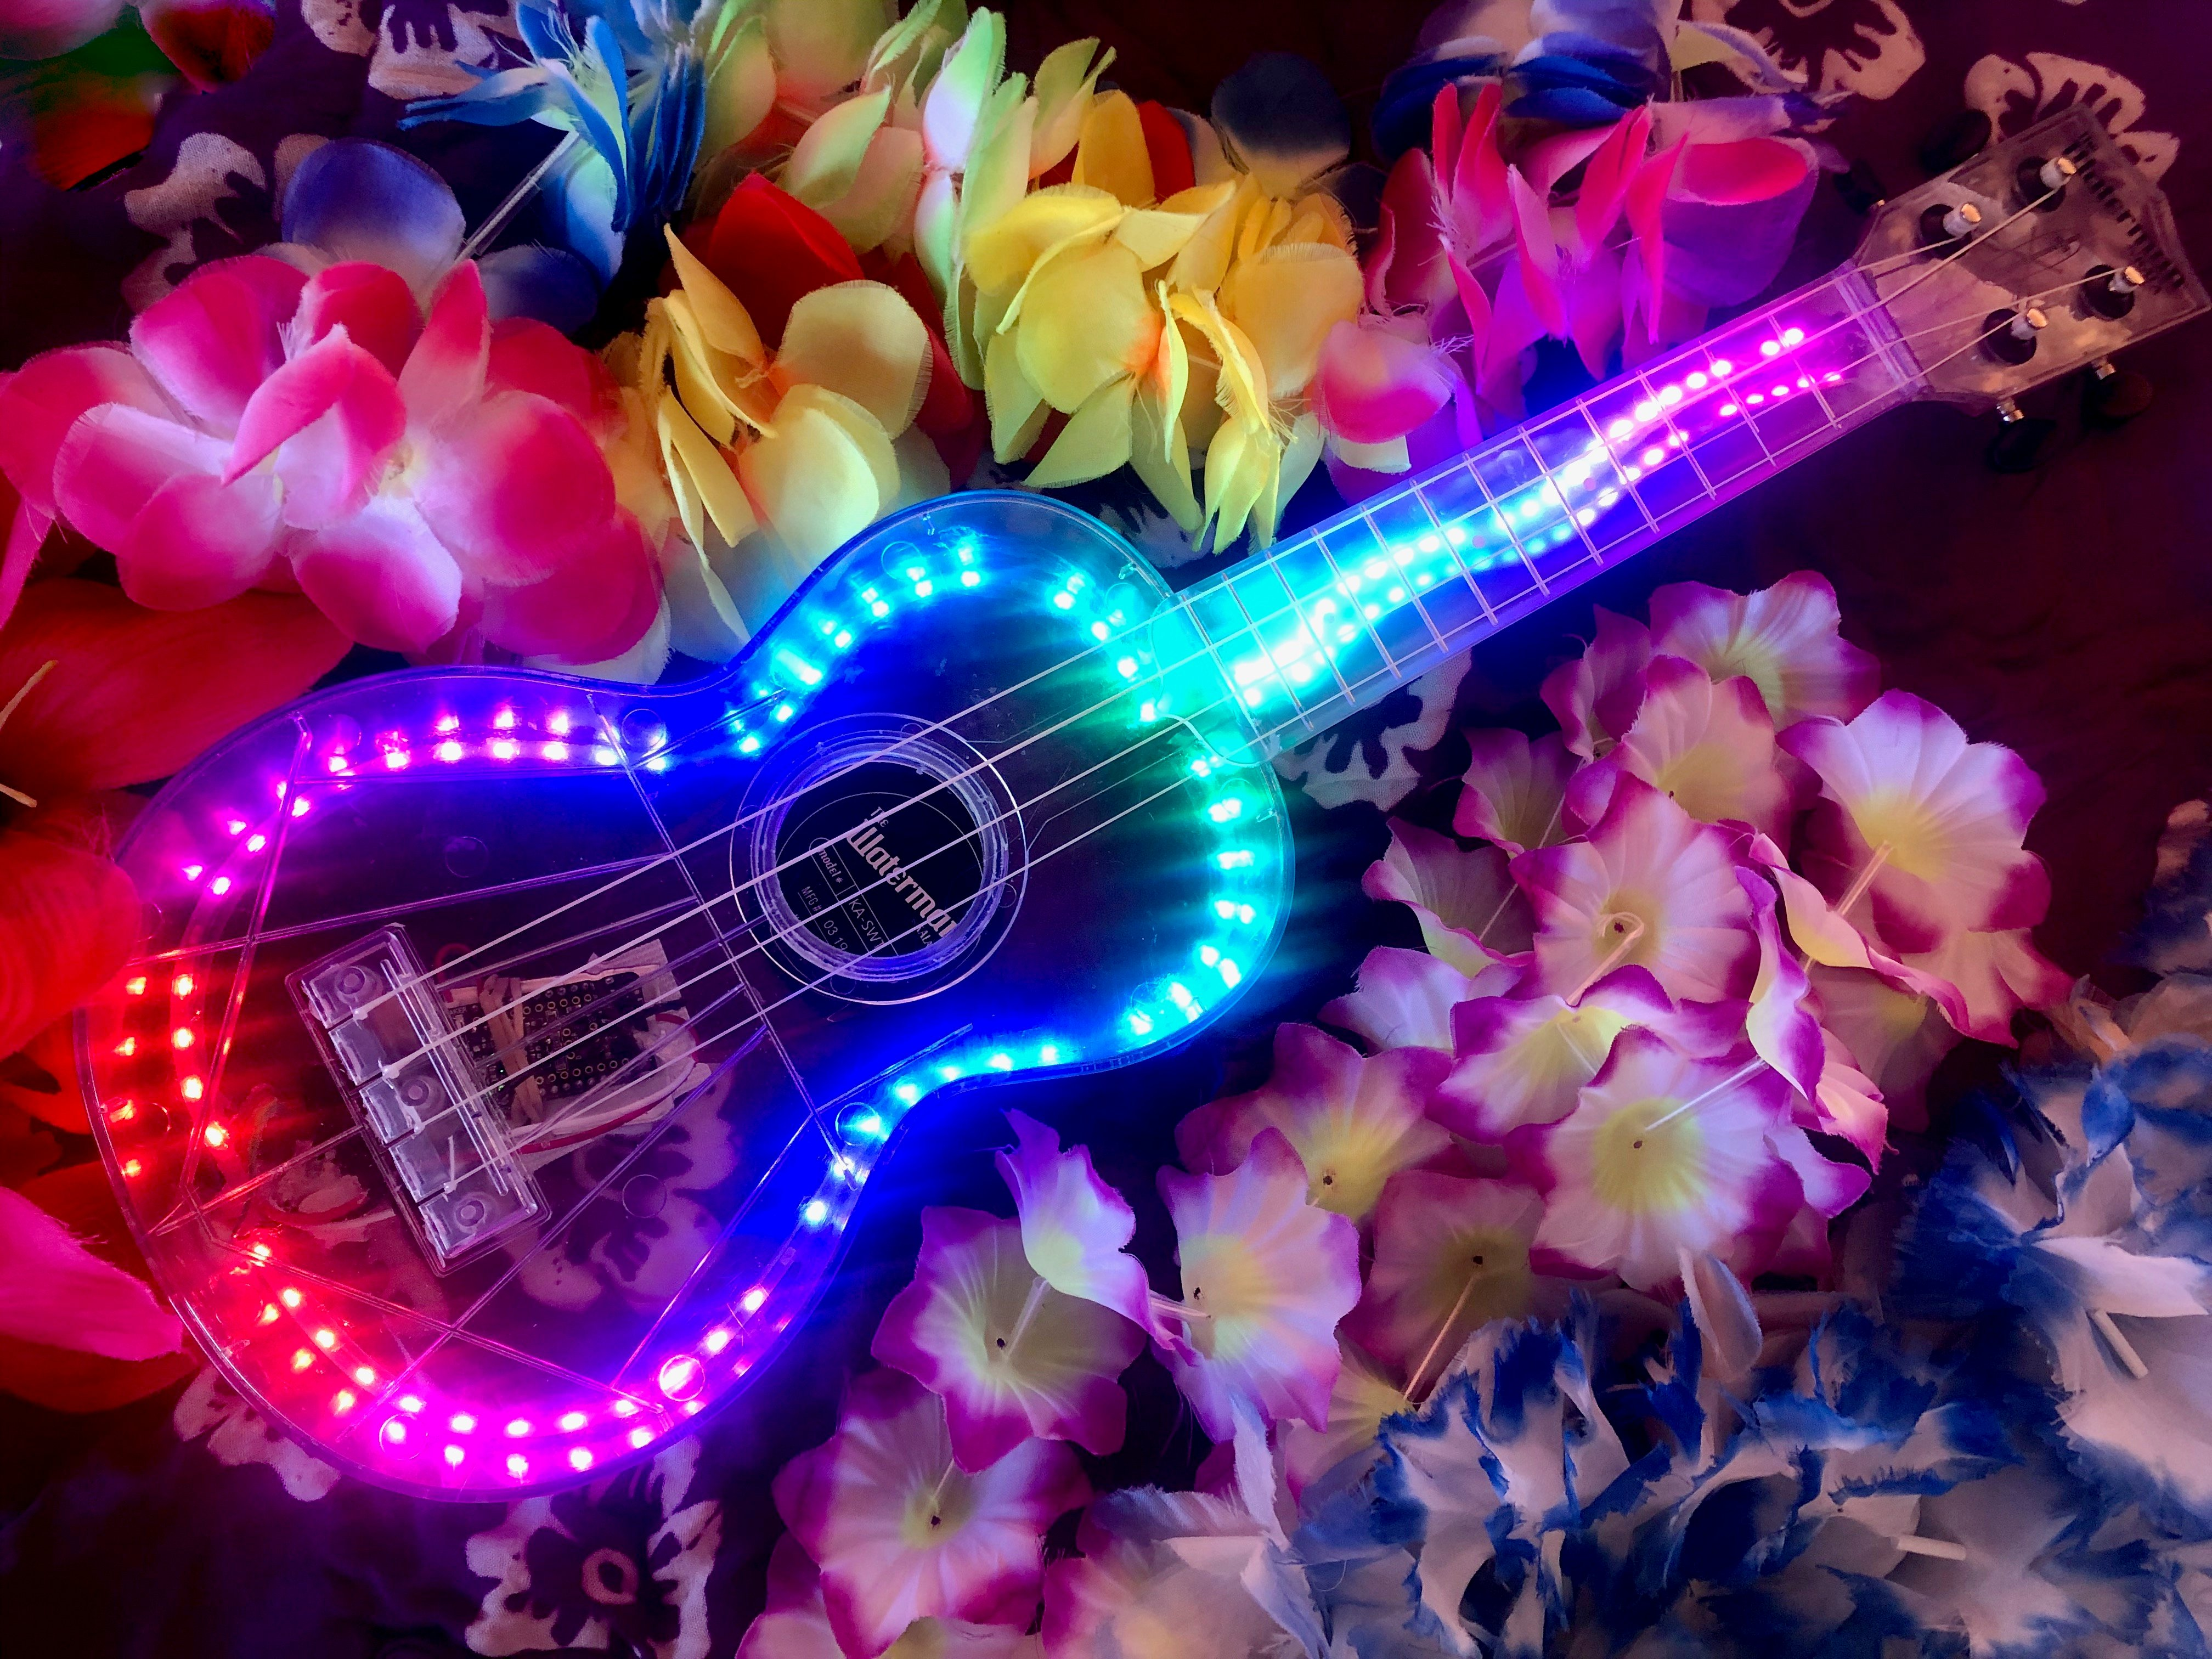 led_strips_led_ukulele_flowers.jpeg